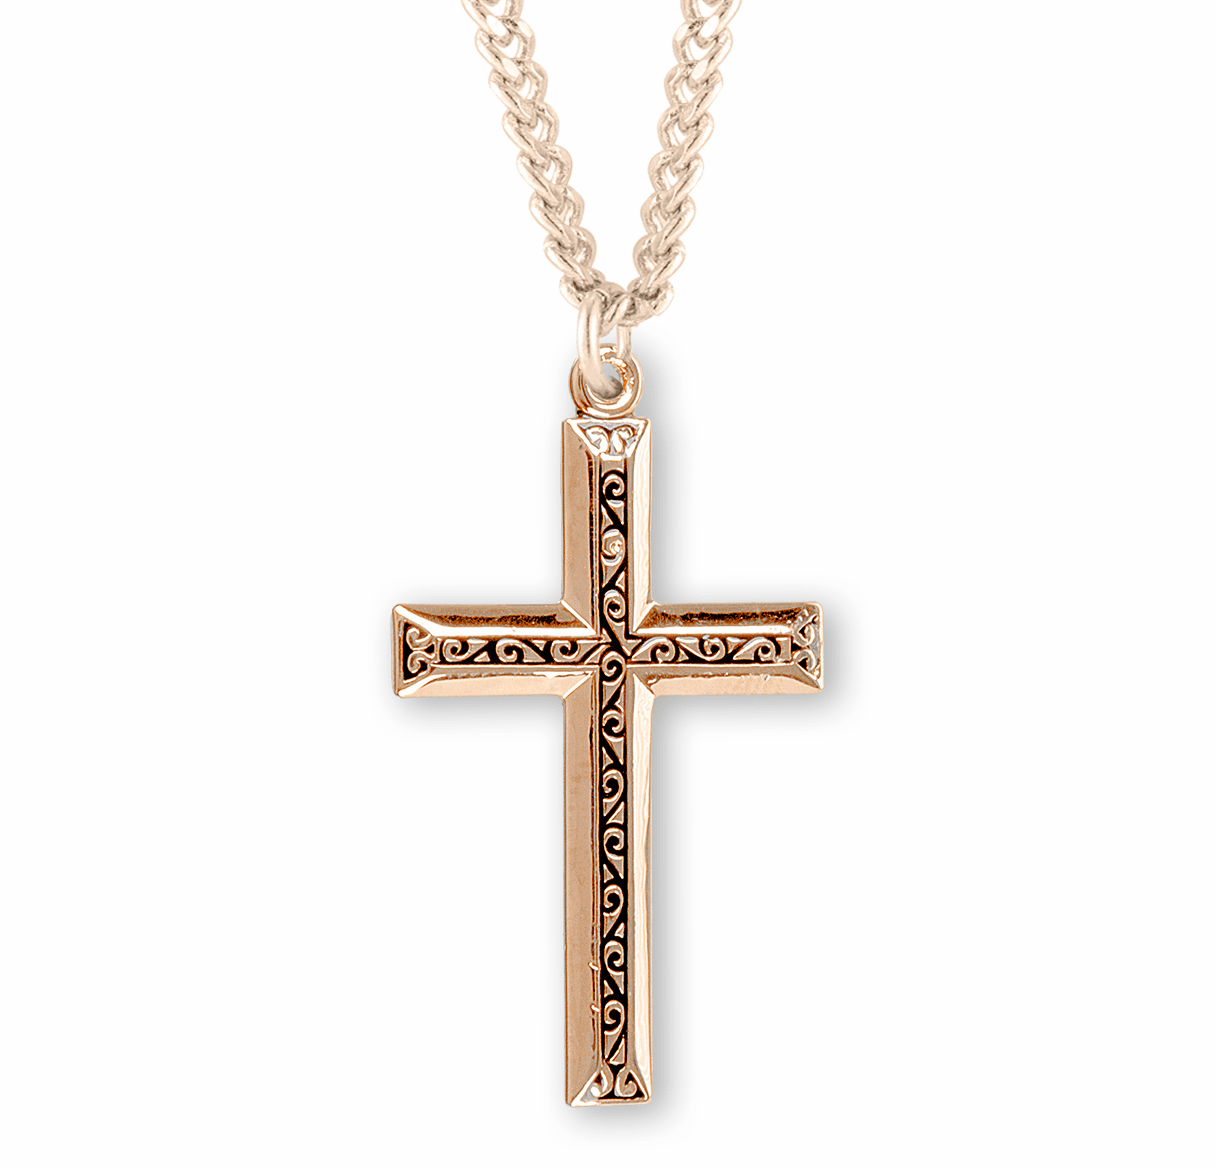 Gold Cross w/Raised Center Design Necklace by HMH Religious